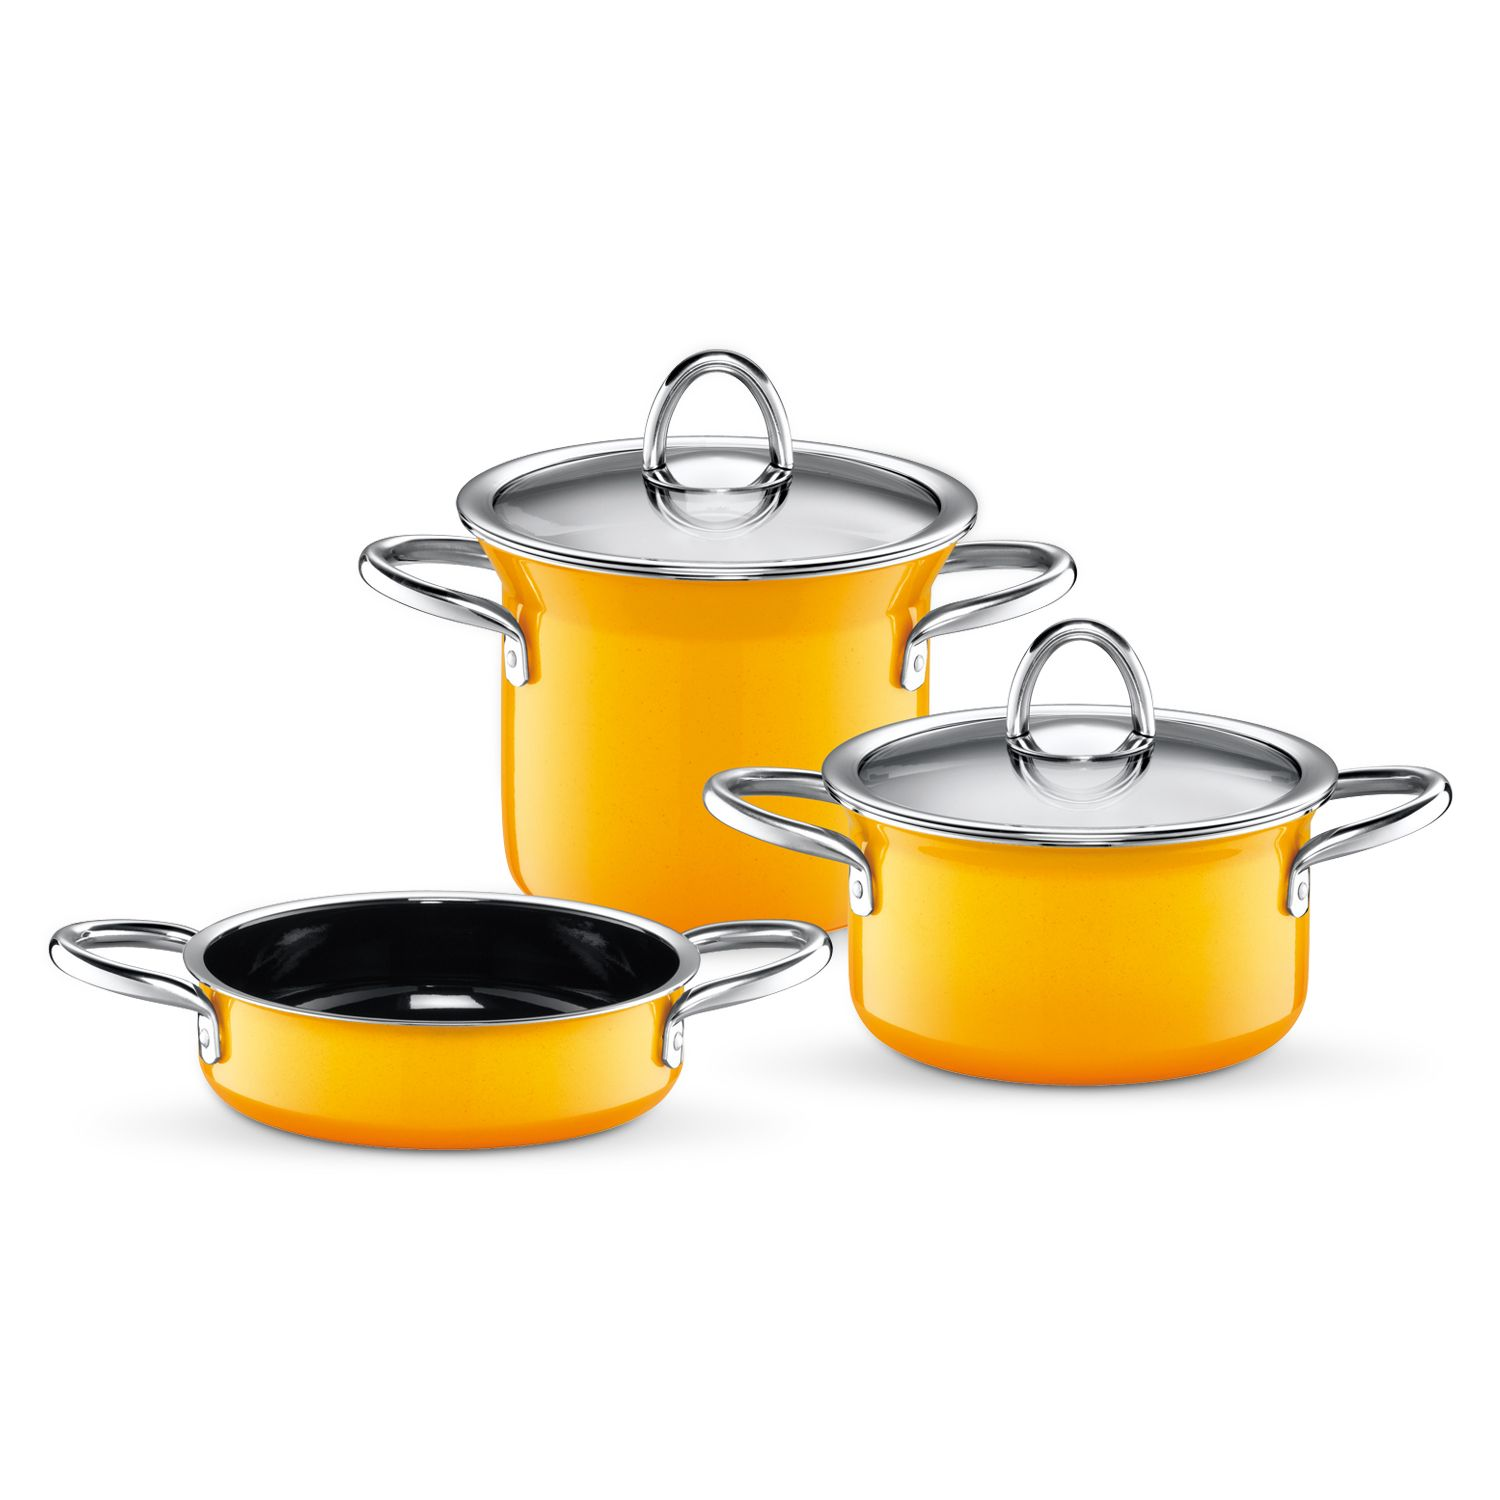 Silit Crazy Yellow | kitchen gear | Pinterest | Cookware and Kitchens